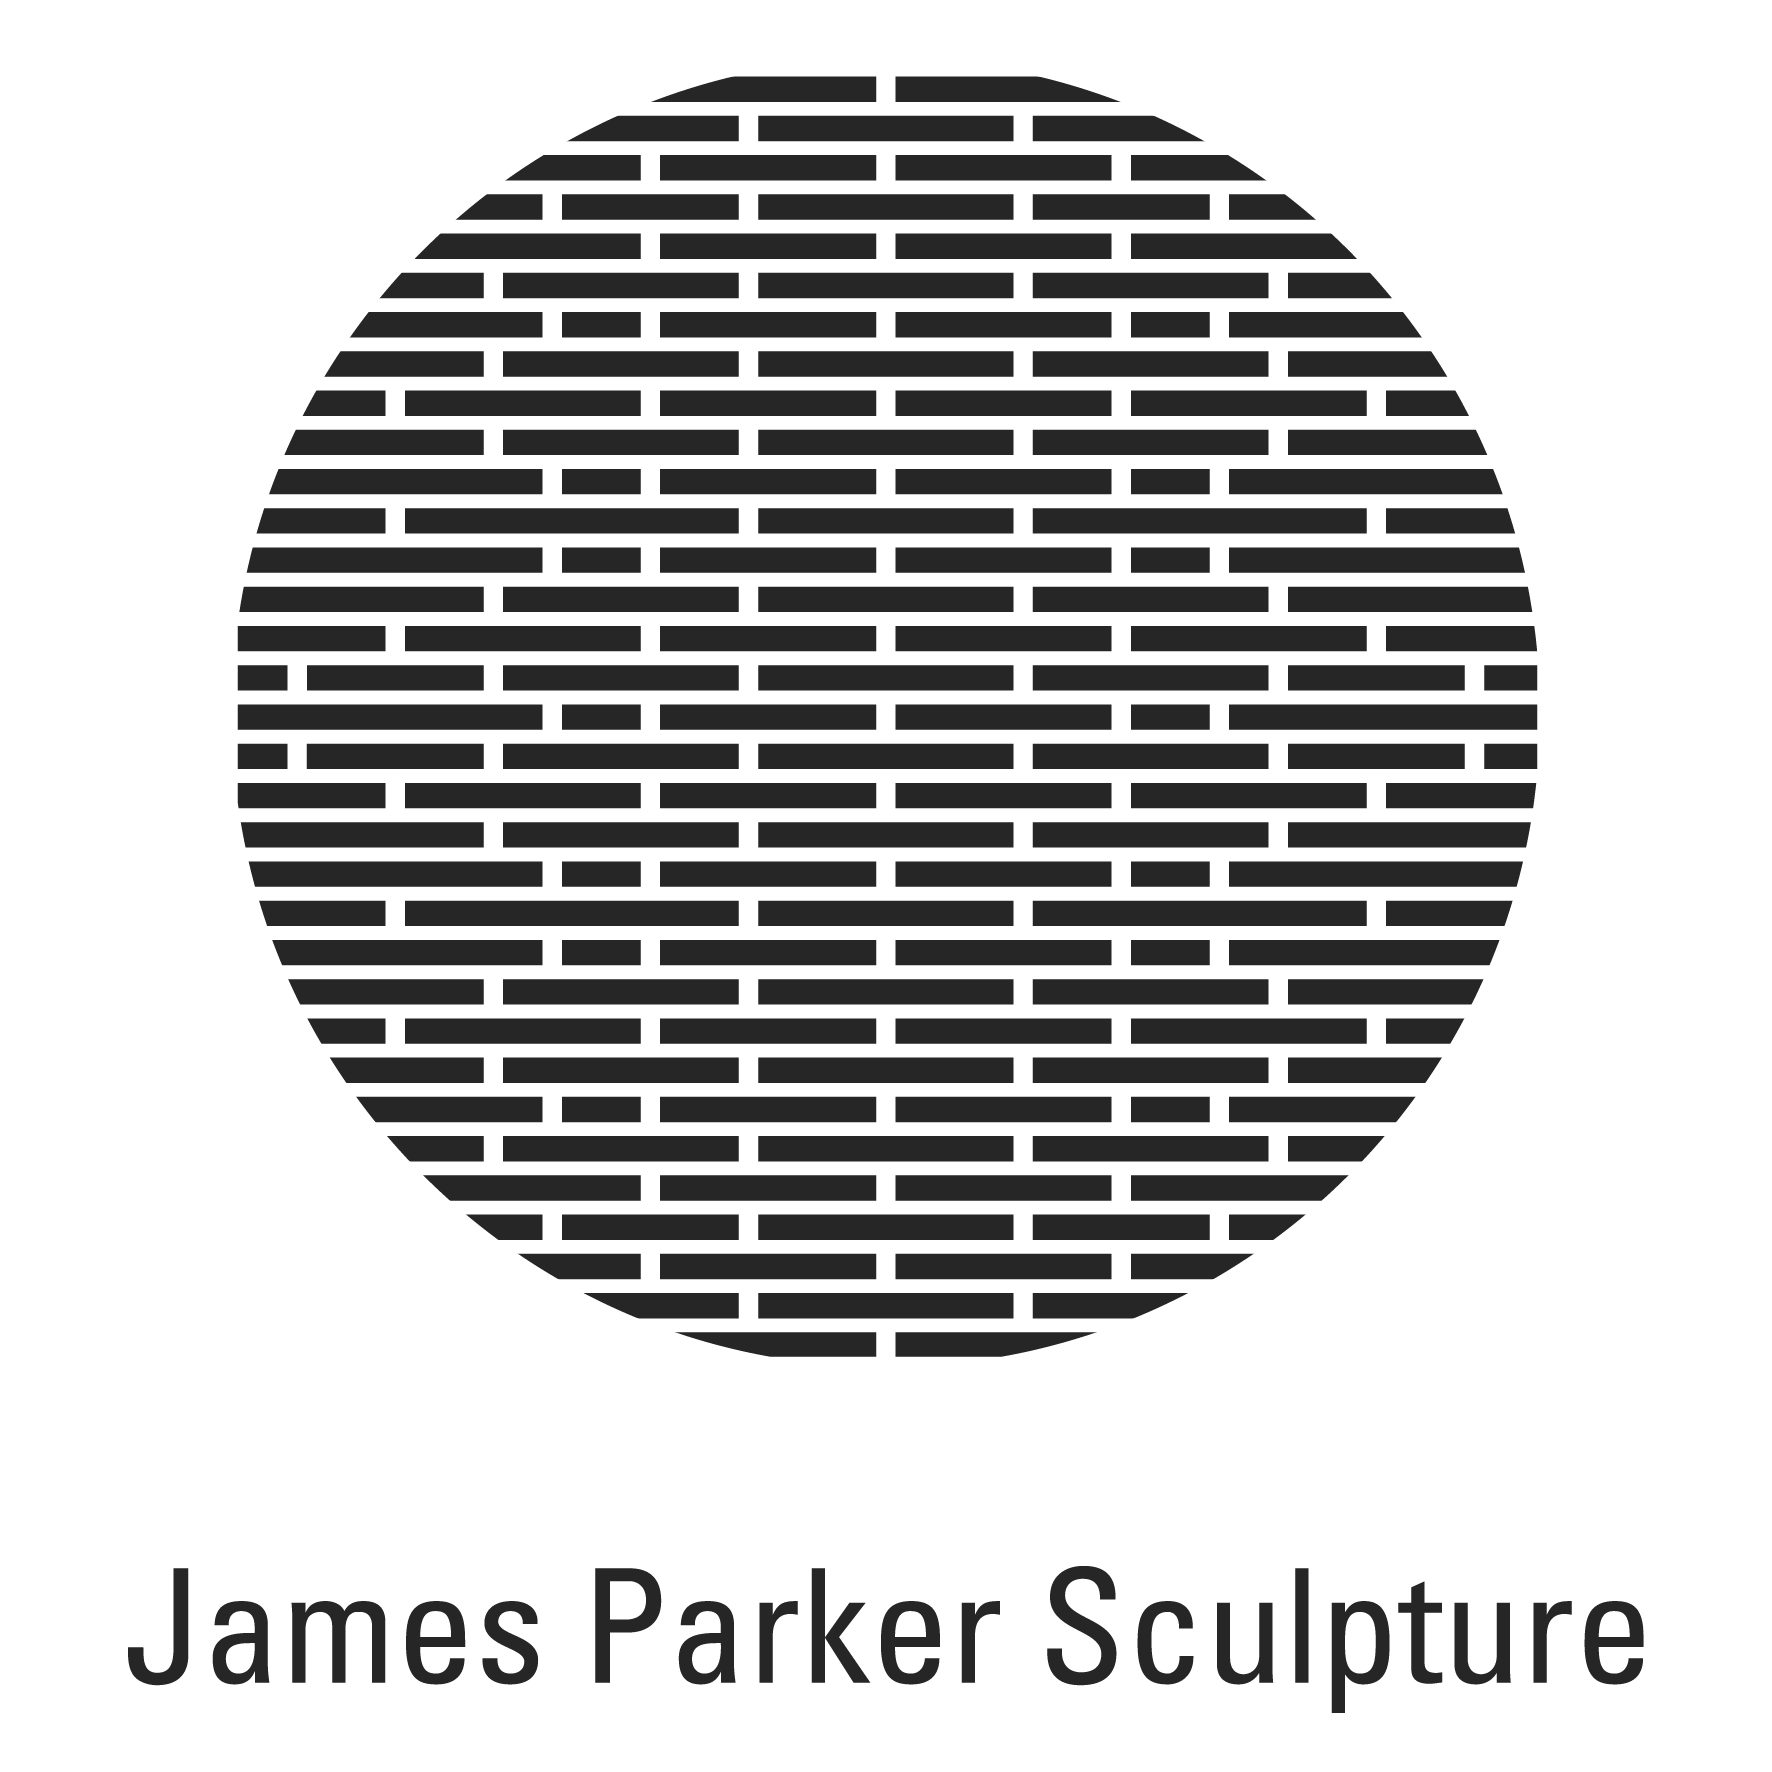 James Parker Sculpture - JAMES PARKER FIRST BEGAN MANIPULATING STONE QUITE EARLY IN LIFE. AT ONLY FOUR YEARS OF AGE, HE ASSISTED HIS FATHER IN REPAIRING GAPS IN THE DRYSTONE WALLS SURROUNDING THE FAMILY FARM IN GALLOWAY, SOUTH WEST SCOTLAND. THIS SIMPLE BONDING EXPERIENCE SPARKED AN INTEREST IN STONEWORK, WHICH WOULD EVENTUALLY TURN INTO BOTH PASSION AND PROFESSION. 2007 SAW THE CREATION OF HIS FIRST SCULPTURE IN SLATE, AND BY JUNE 2008 HIS FIRST PUBLIC EXHIBITION WAS UNDERWAY. SEVERAL EXHIBITIONS HAVE SINCE FOLLOWED, INCLUDING MULTIPLE ACCOLADES AND AWARD-WINNING YEARS AT THE RHS CHELSEA FLOWER SHOW